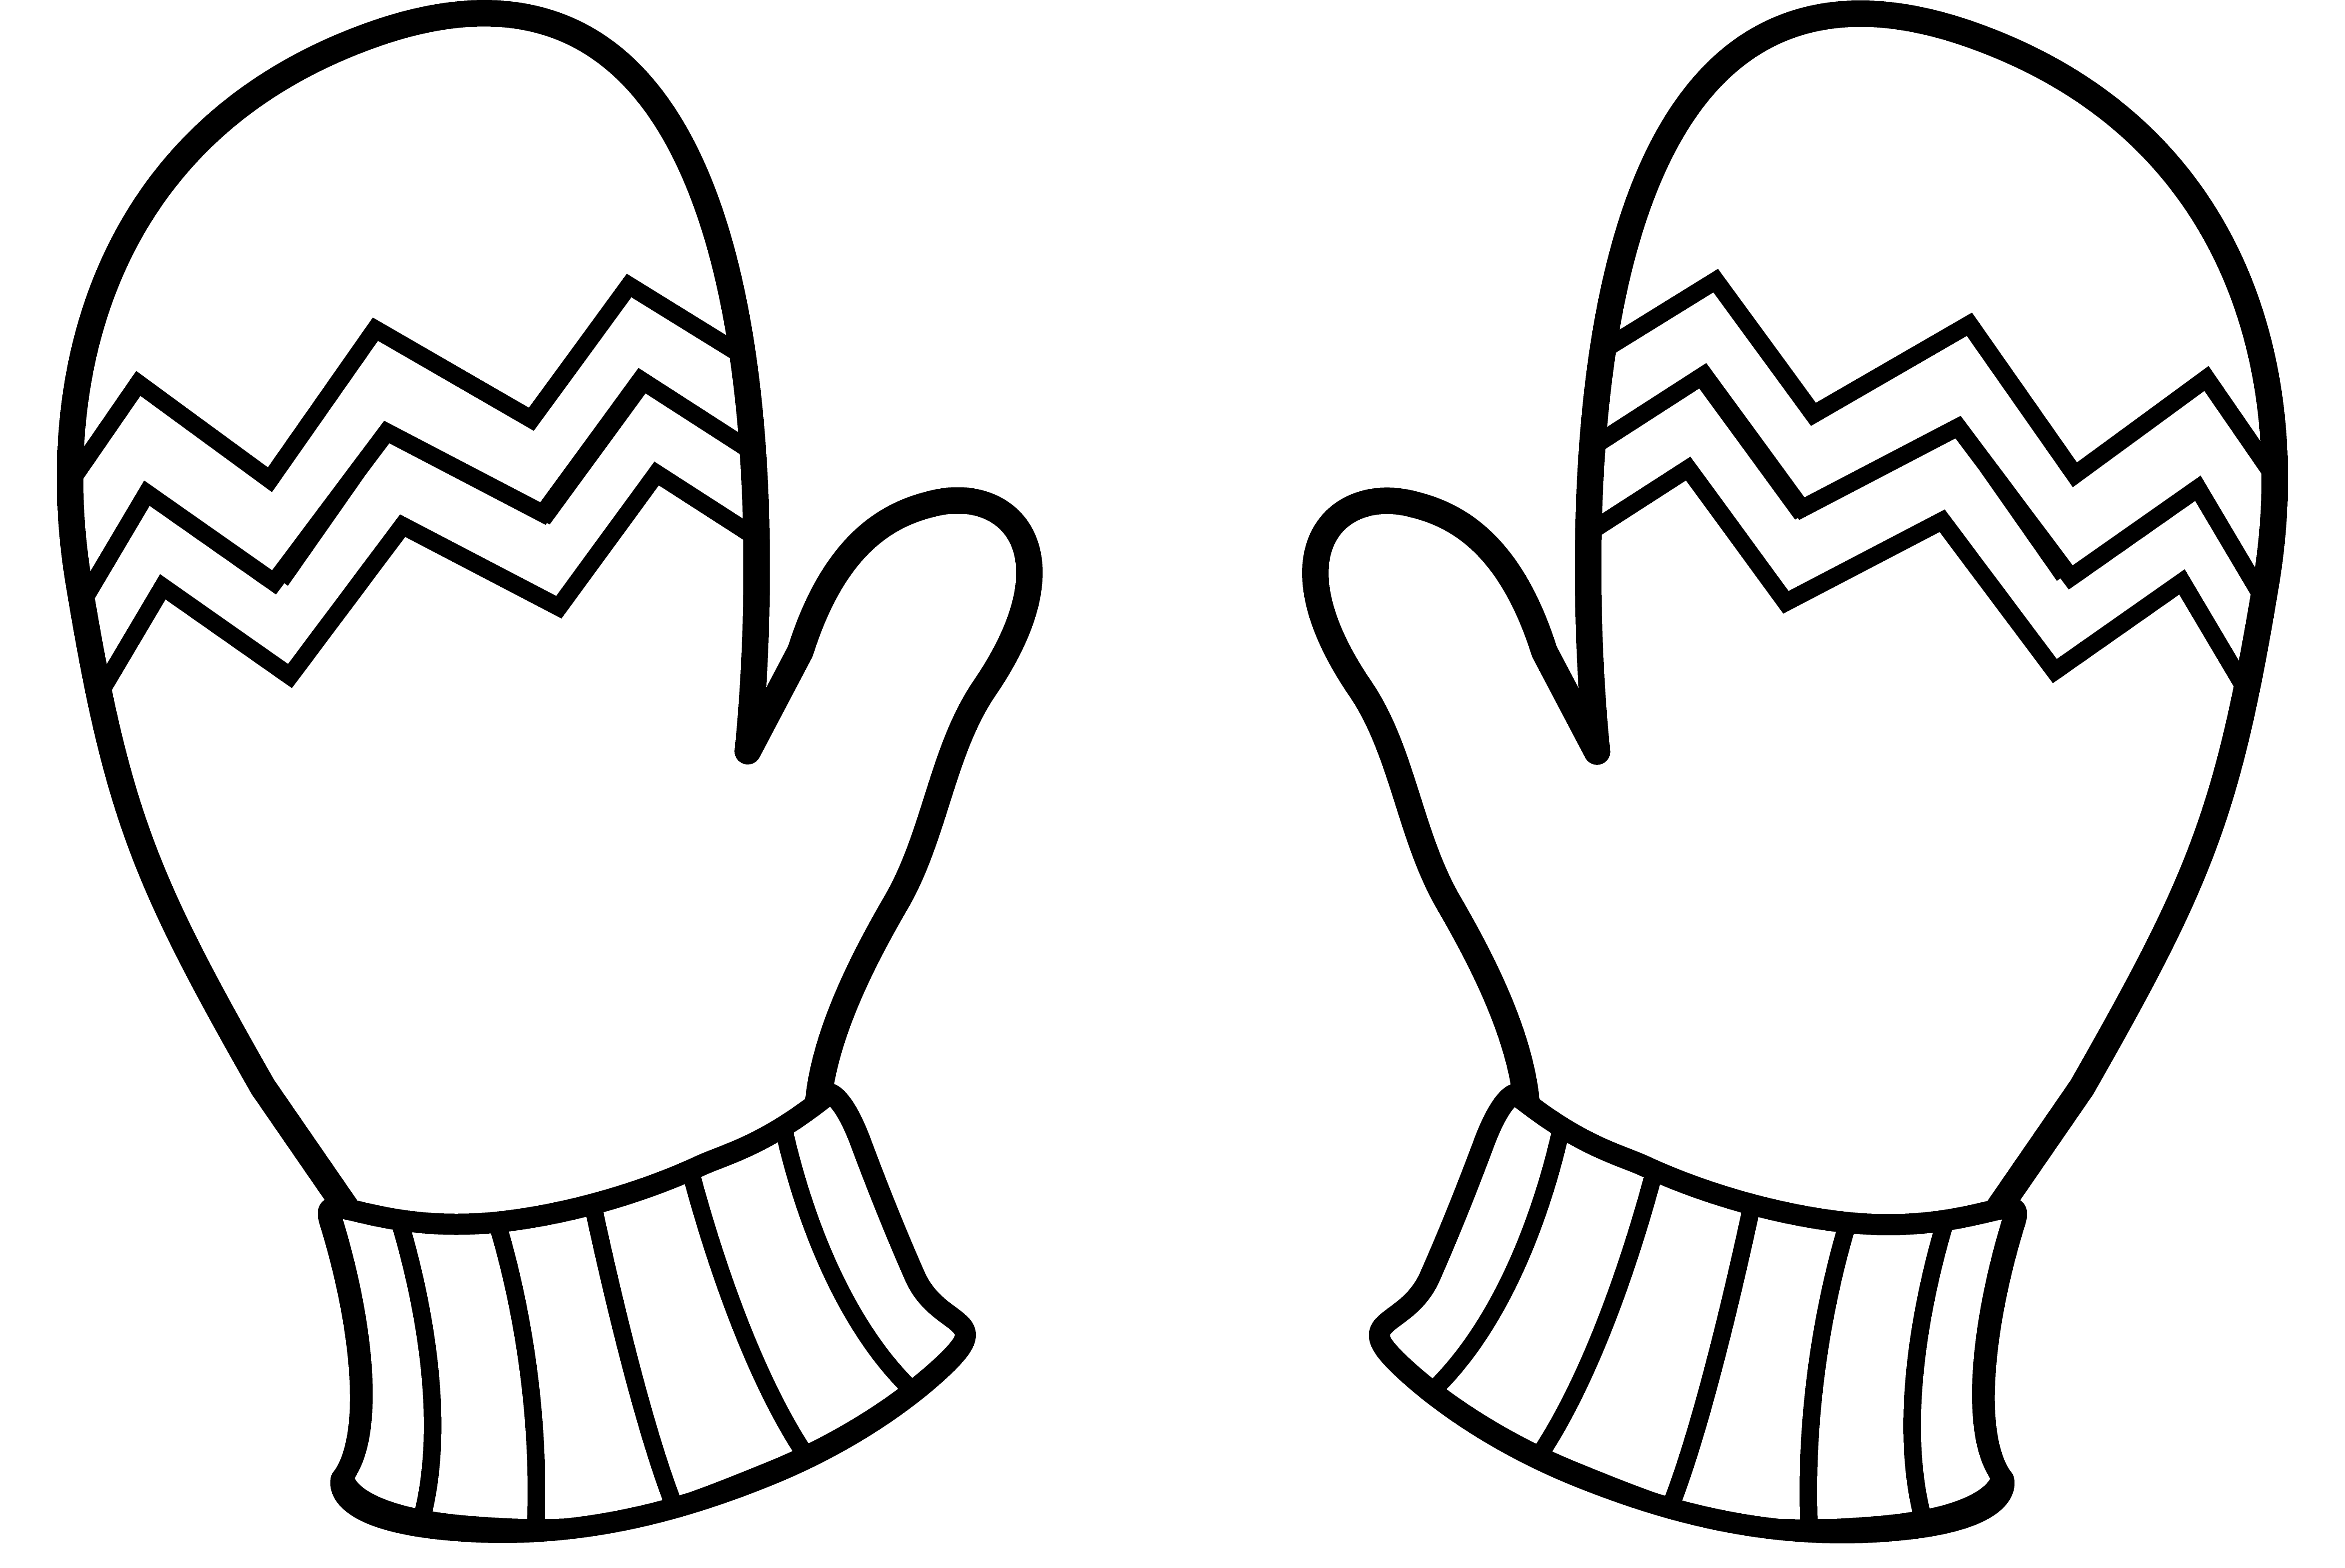 Mittens Clipart Outline Mittens Outline Transparent Free